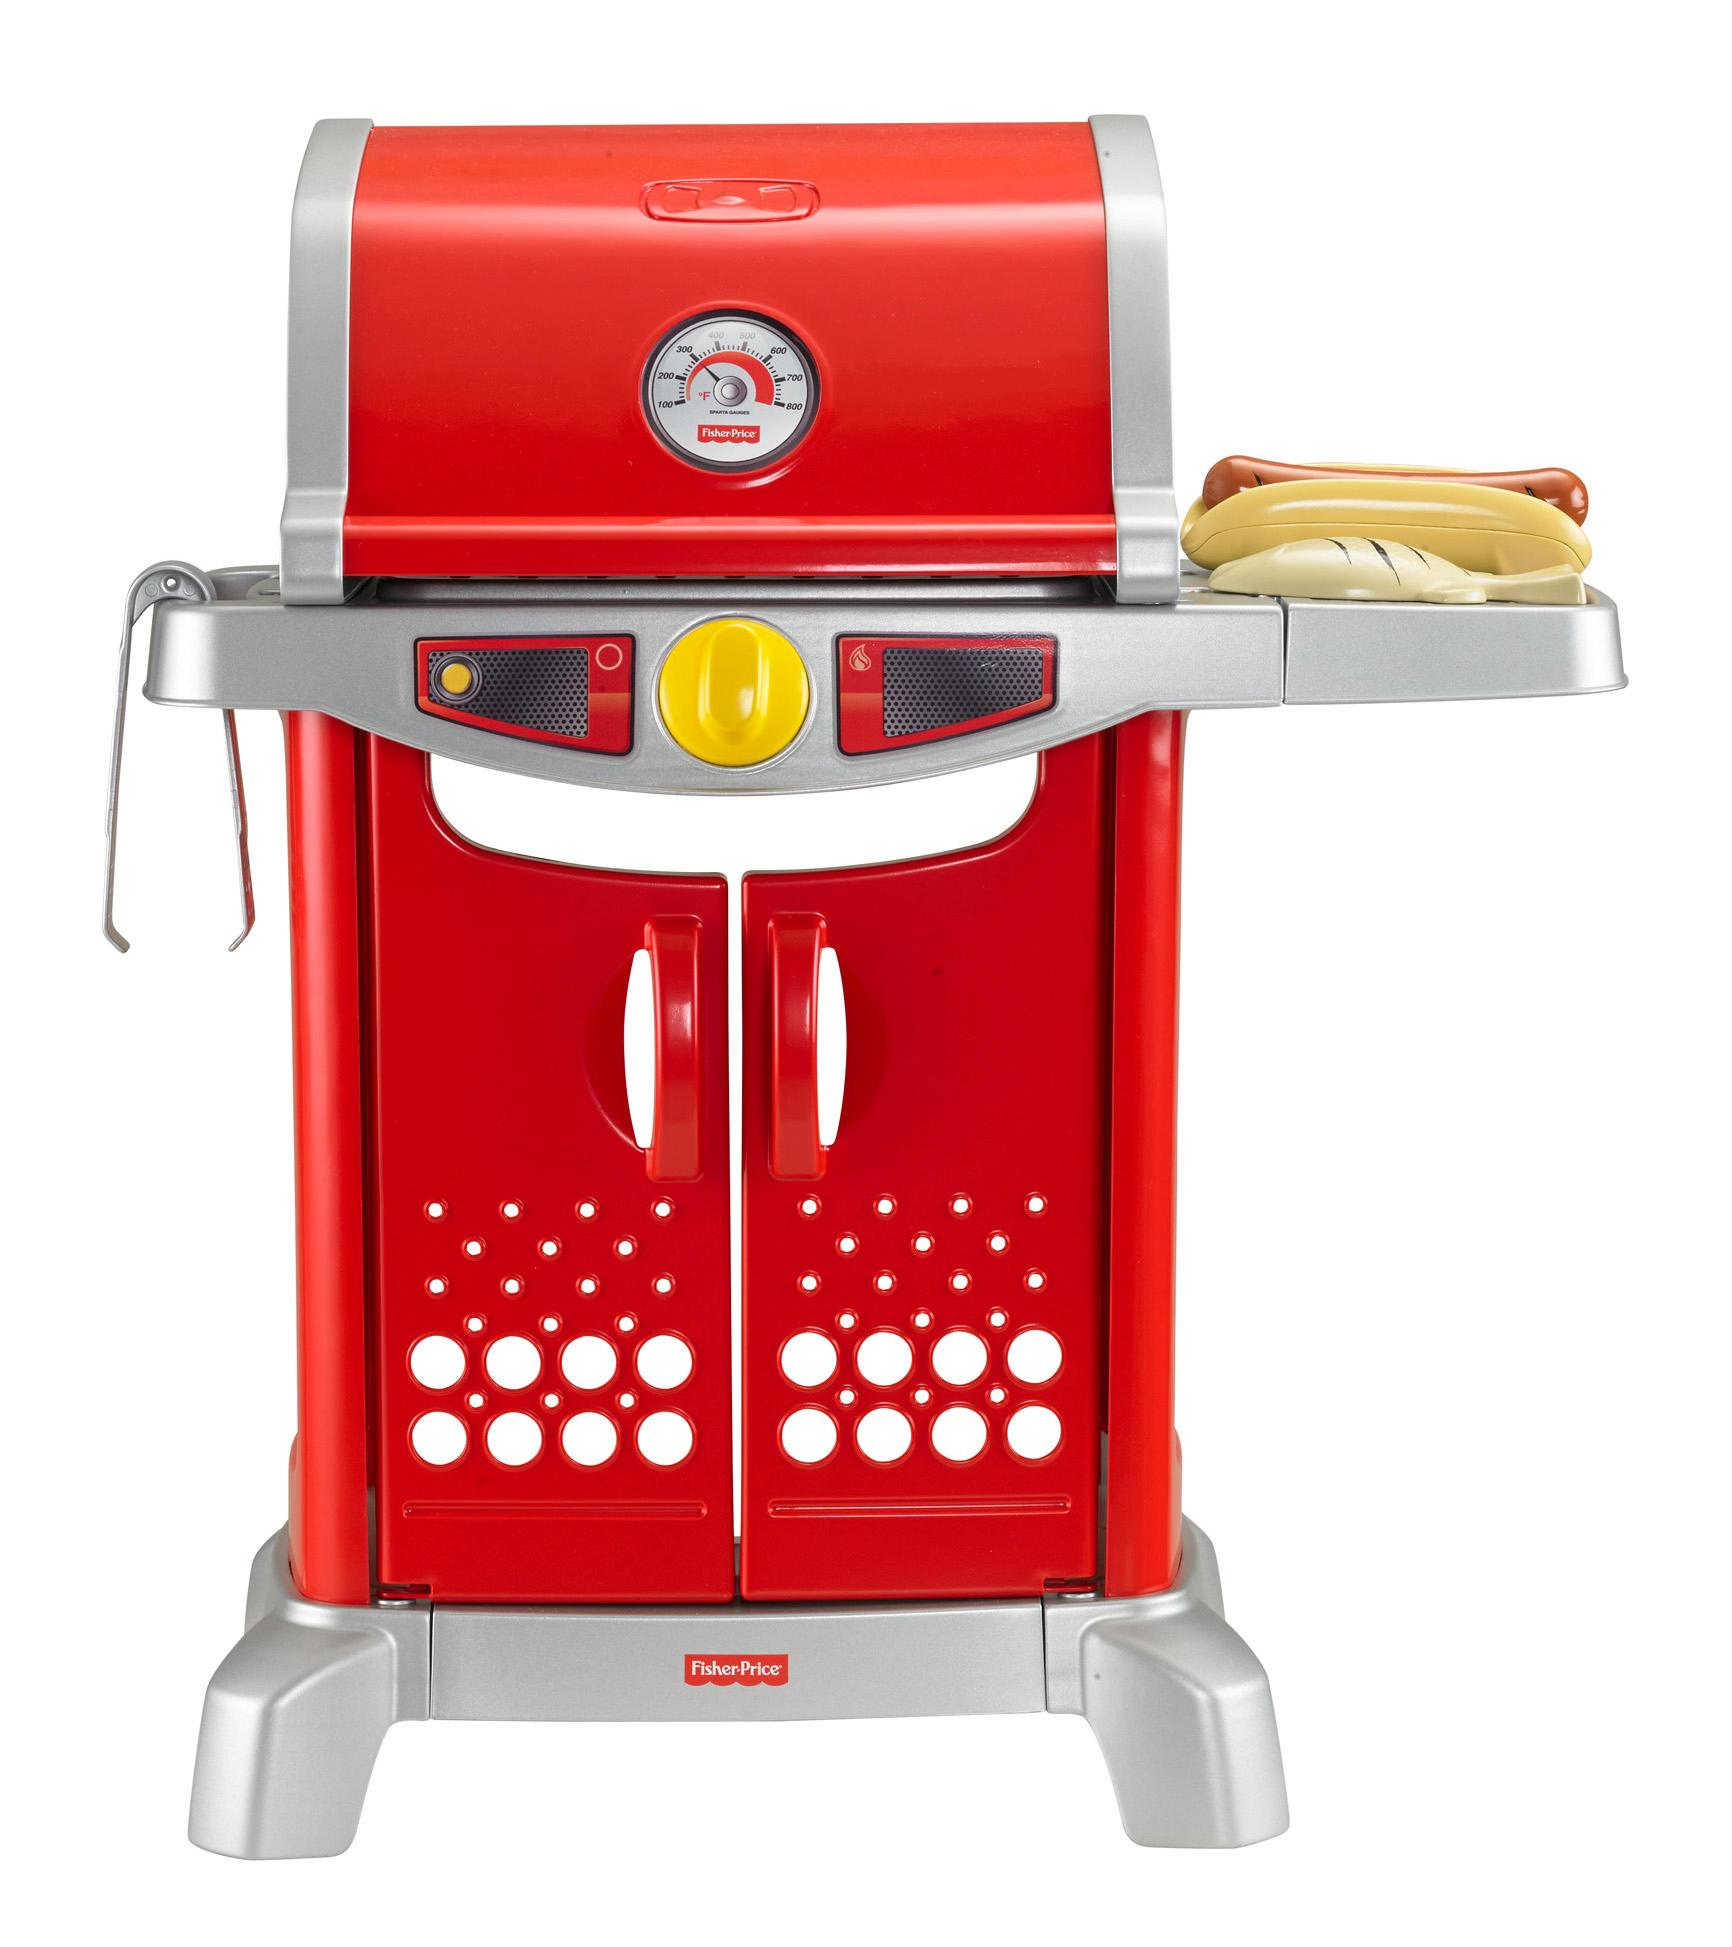 Fisher-Price Grill Playset